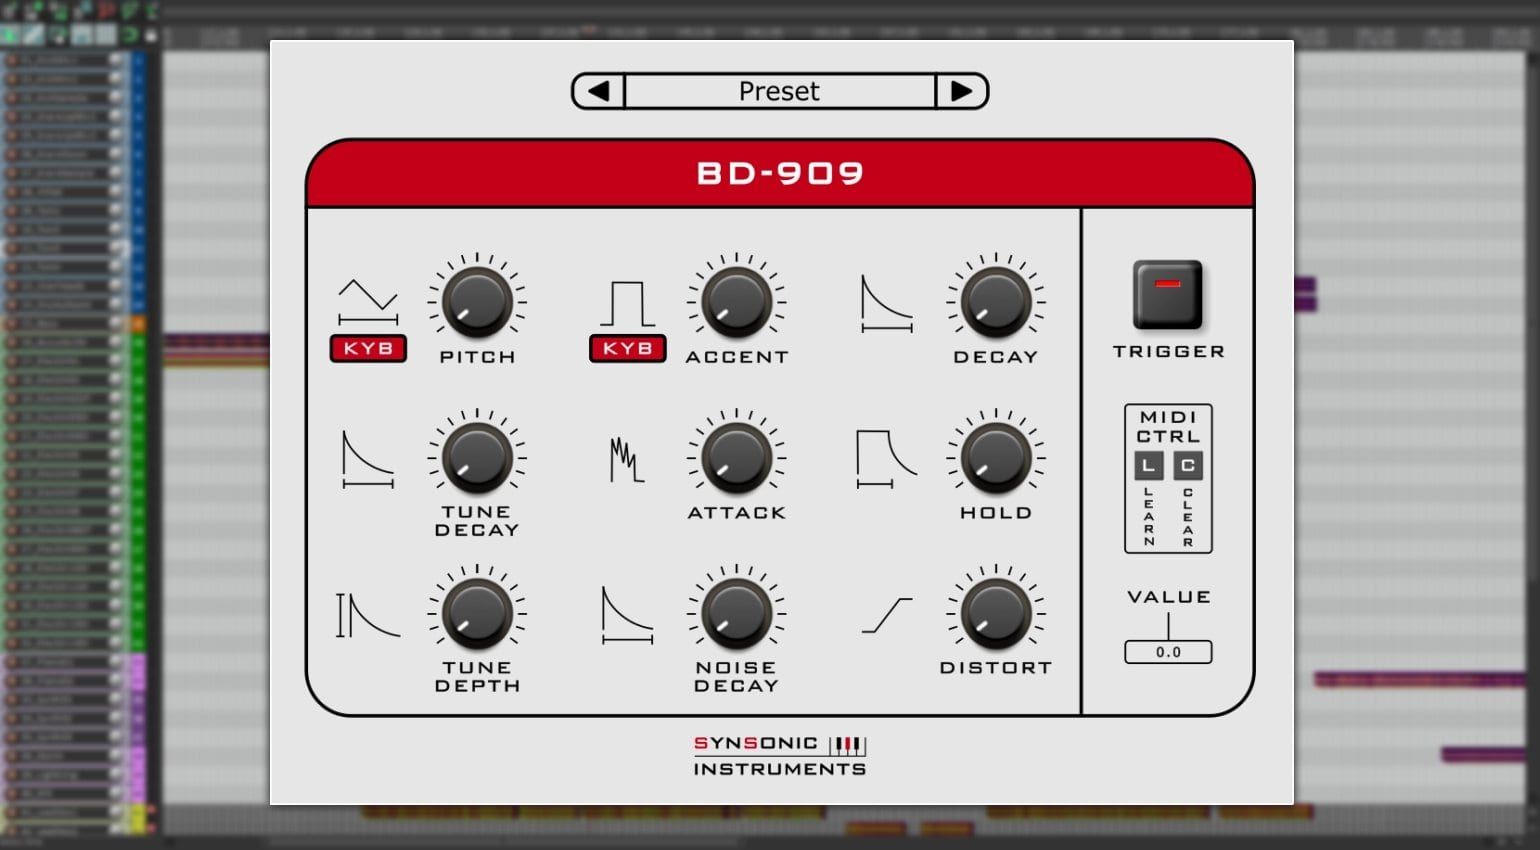 Synsonic's free BD-808 and BD-909 plug-ins give you some kicks